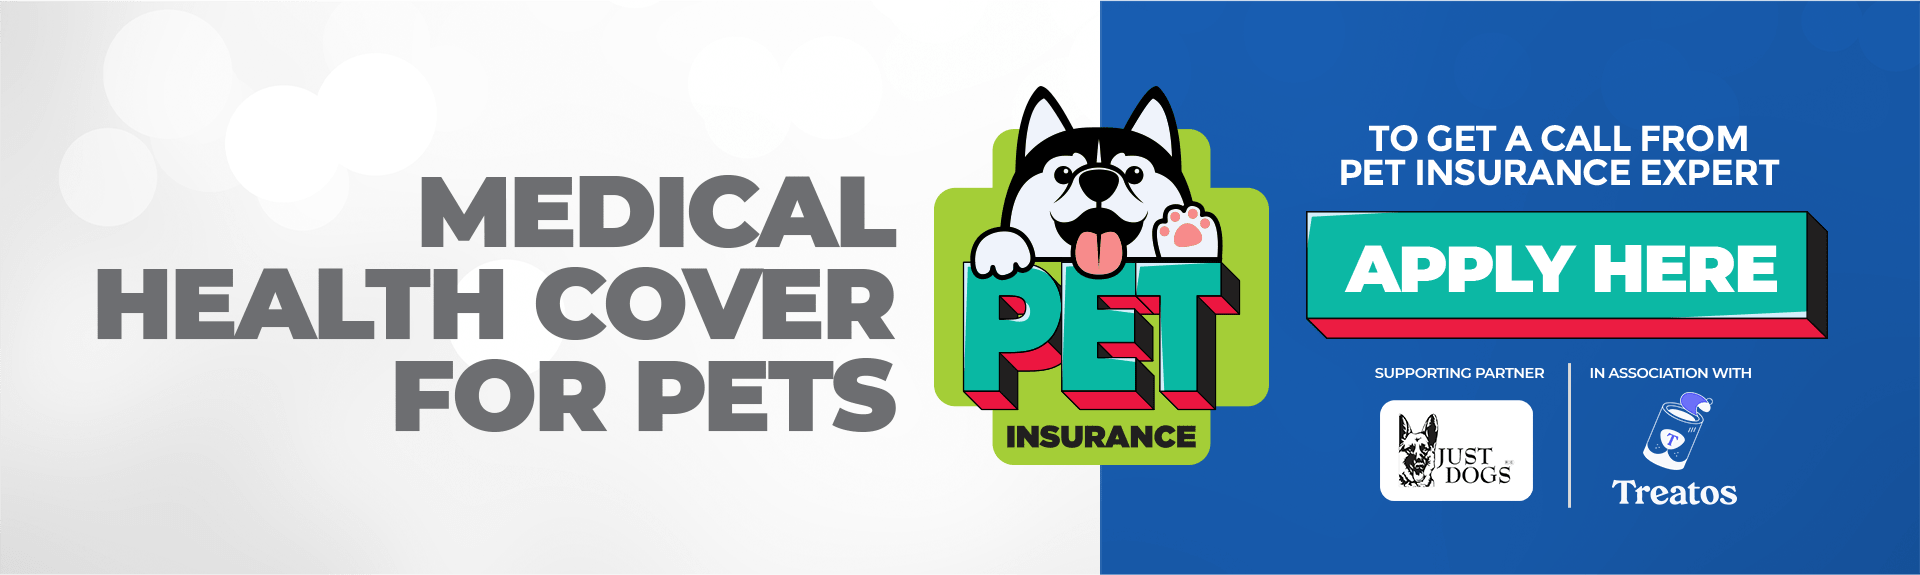 medical health cover for pets